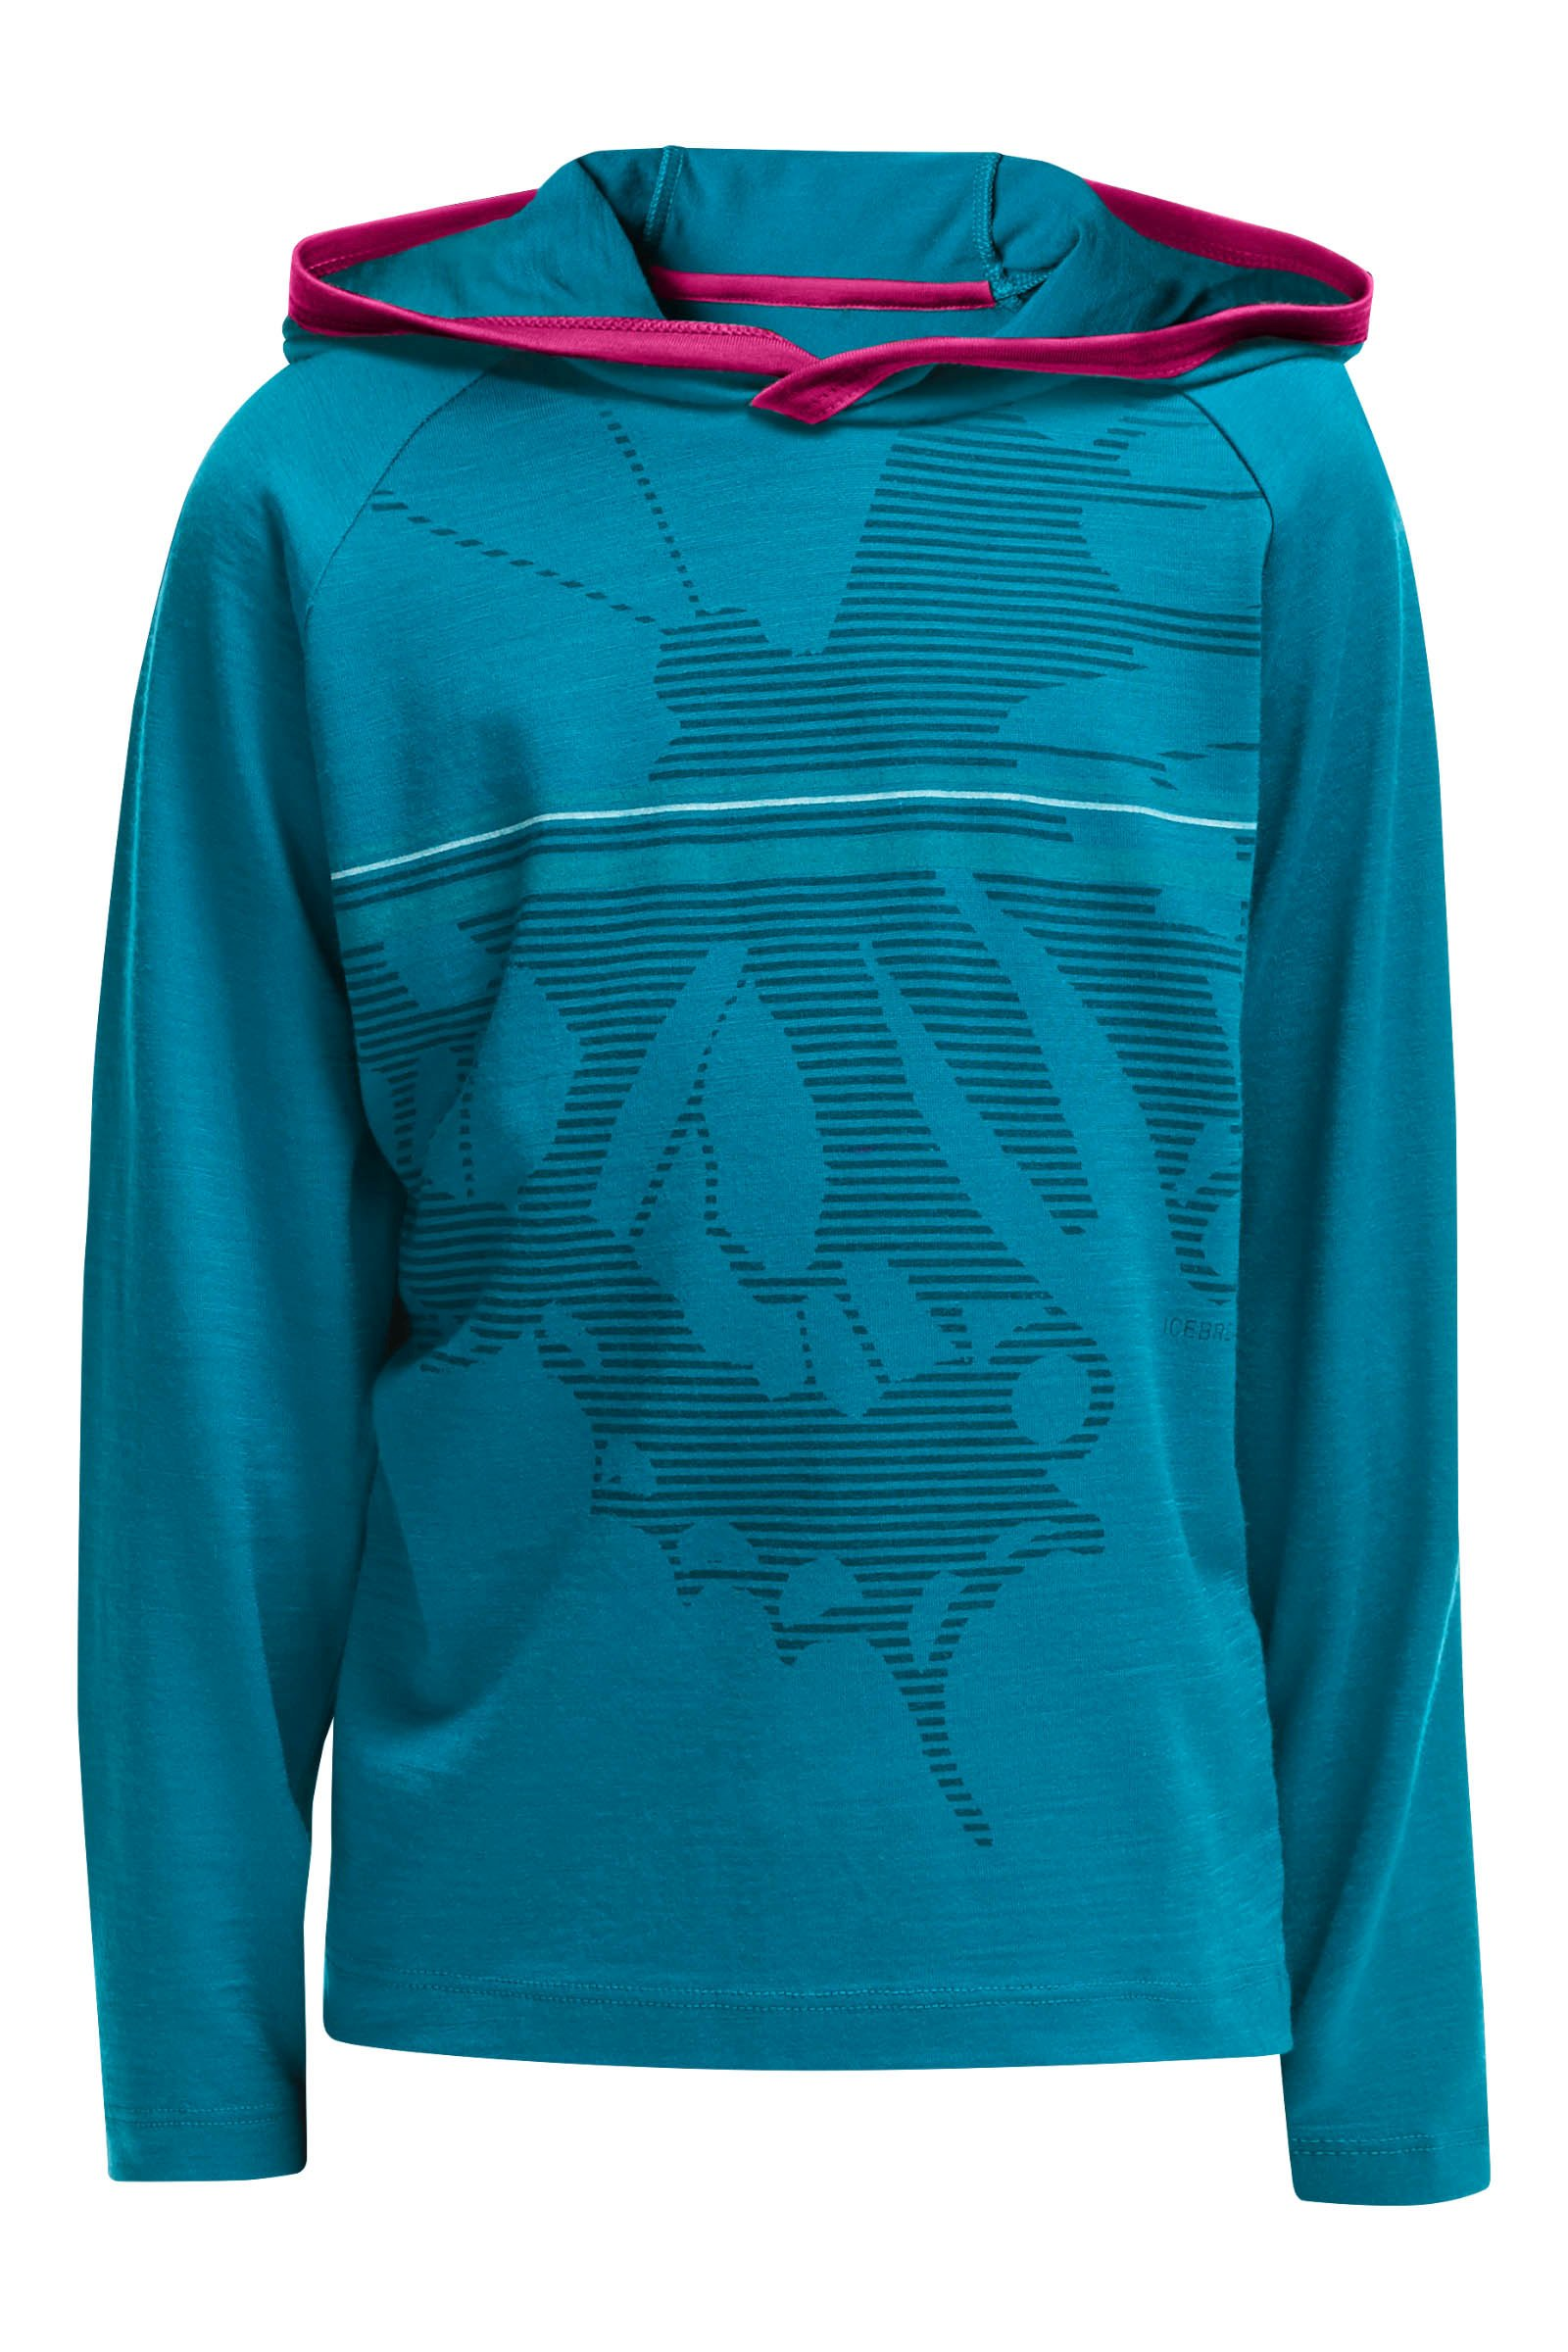 Icebreaker Kids Tech LS Hood Swallow Tail Alpine/Raspberry-30